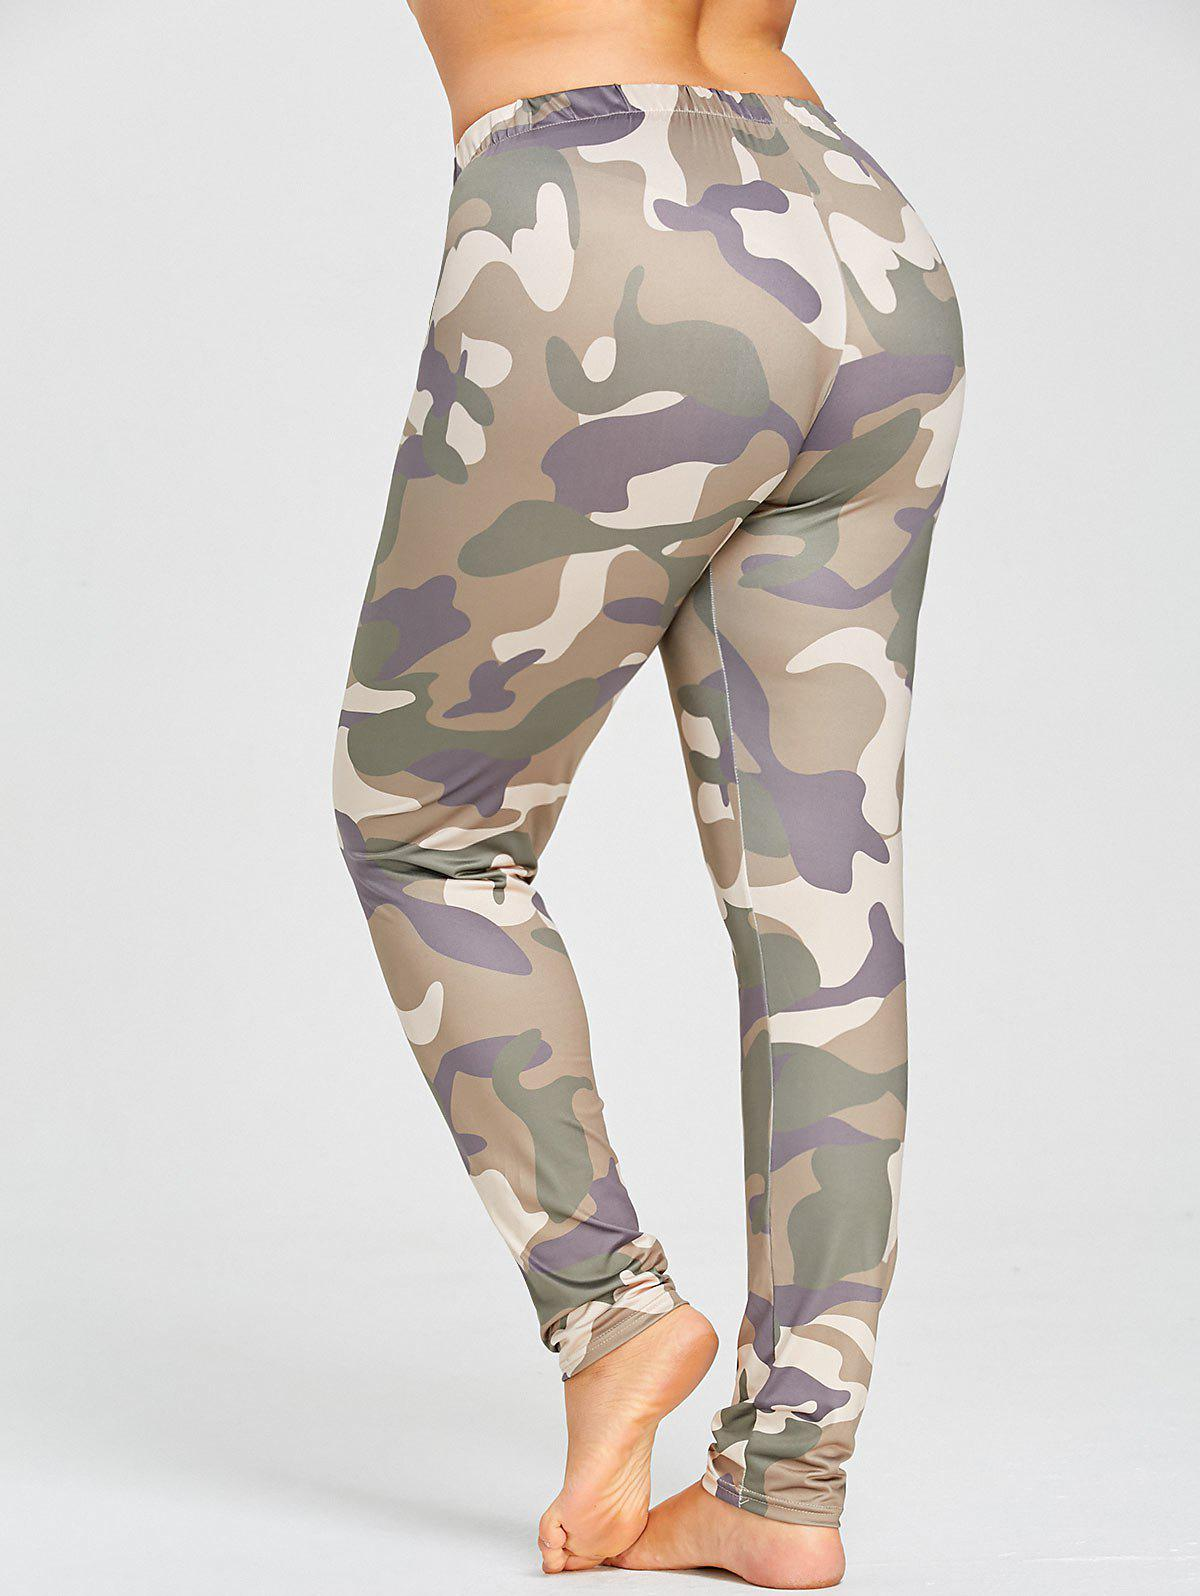 Plus Size Camo Printed Slim Skinny Pants plus size cutout skinny pants